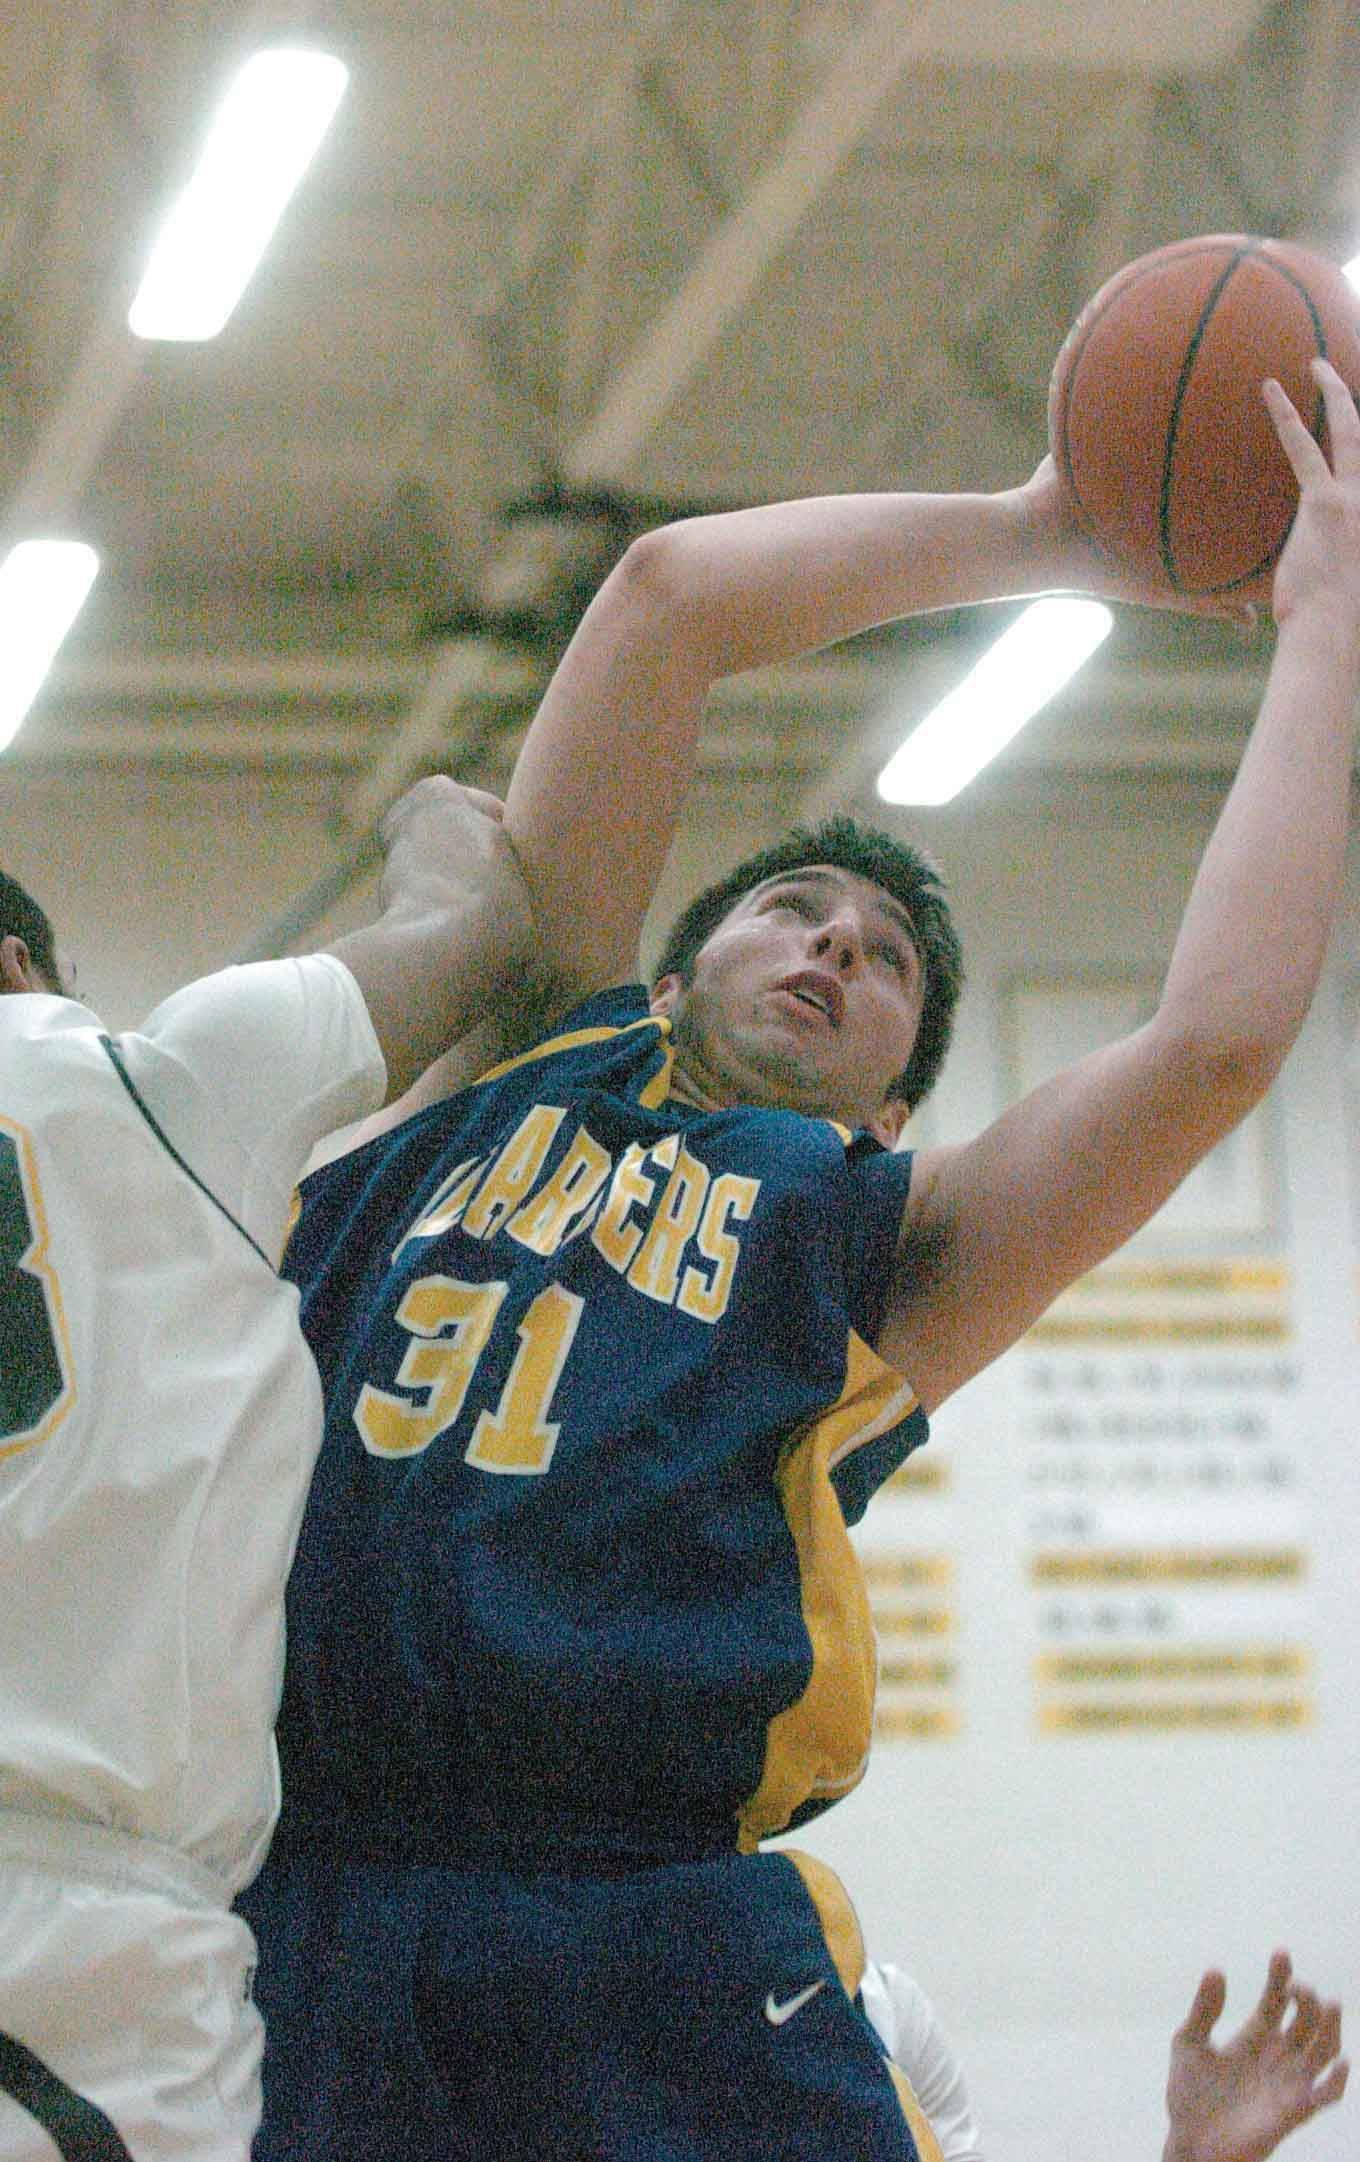 Tim Frenandez of Aurora Central goes up for a rebound .